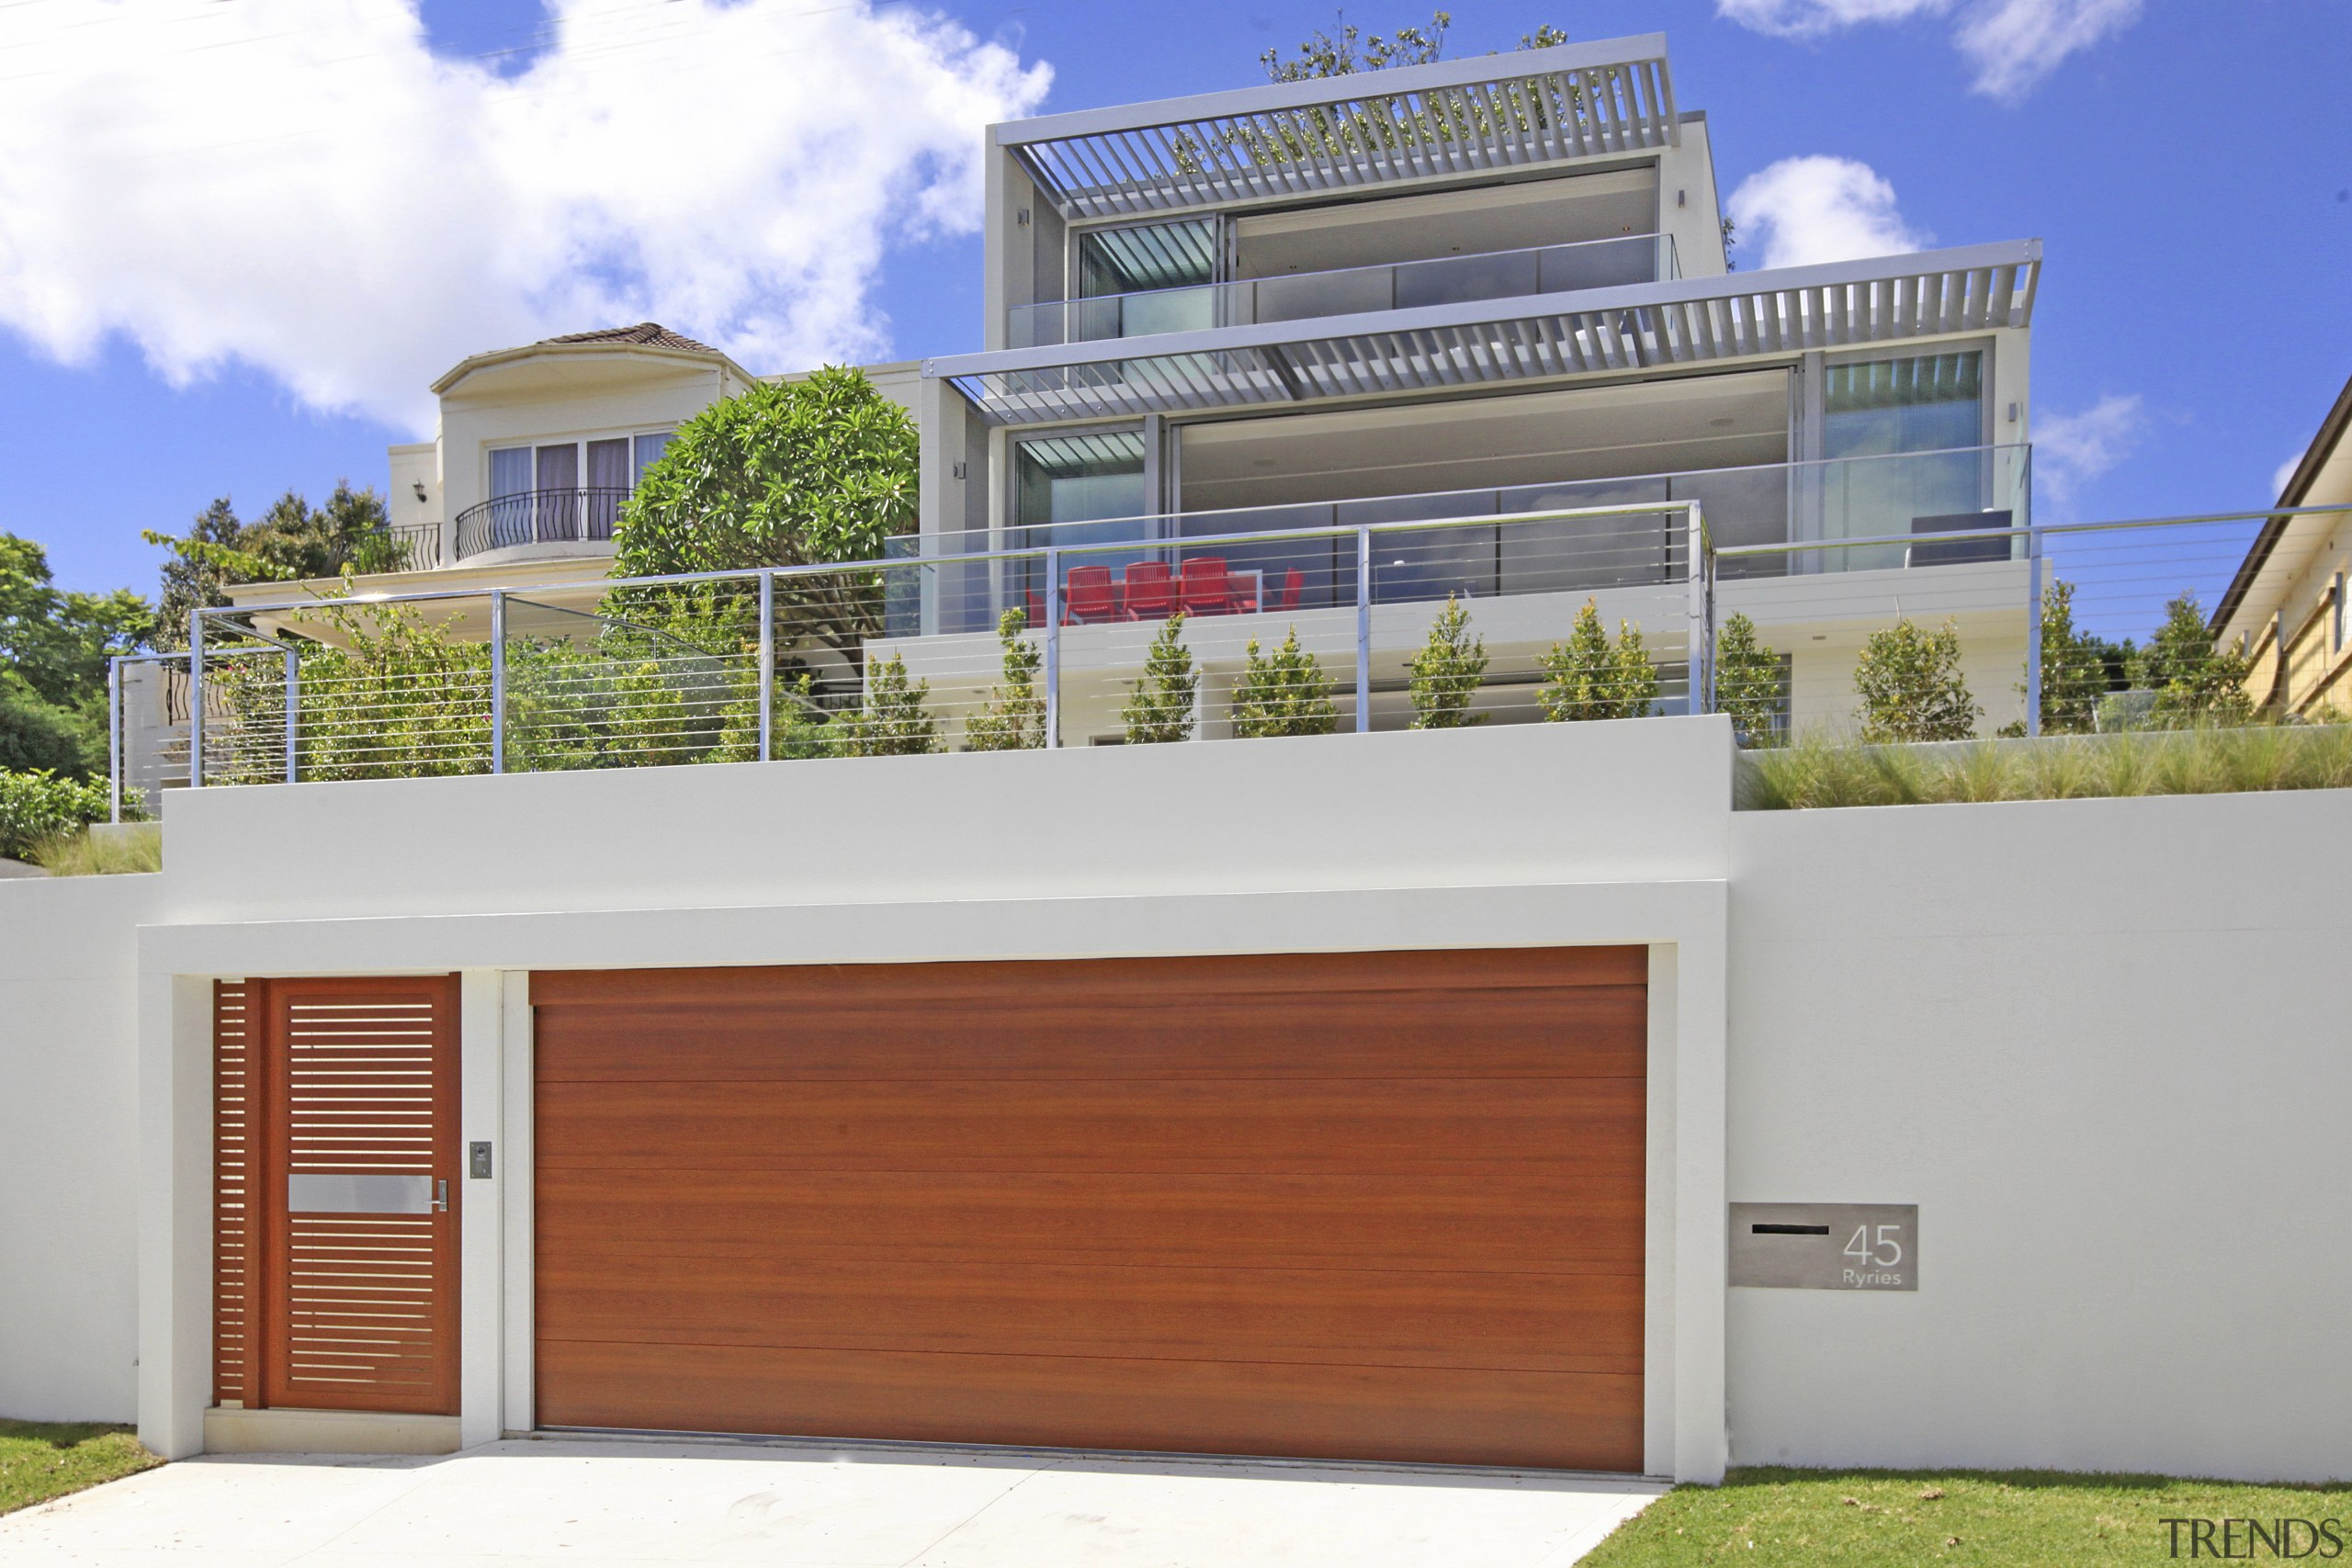 Exterior of house with wooden garage door. - architecture, building, elevation, estate, facade, home, house, official residence, property, real estate, residential area, white, gray